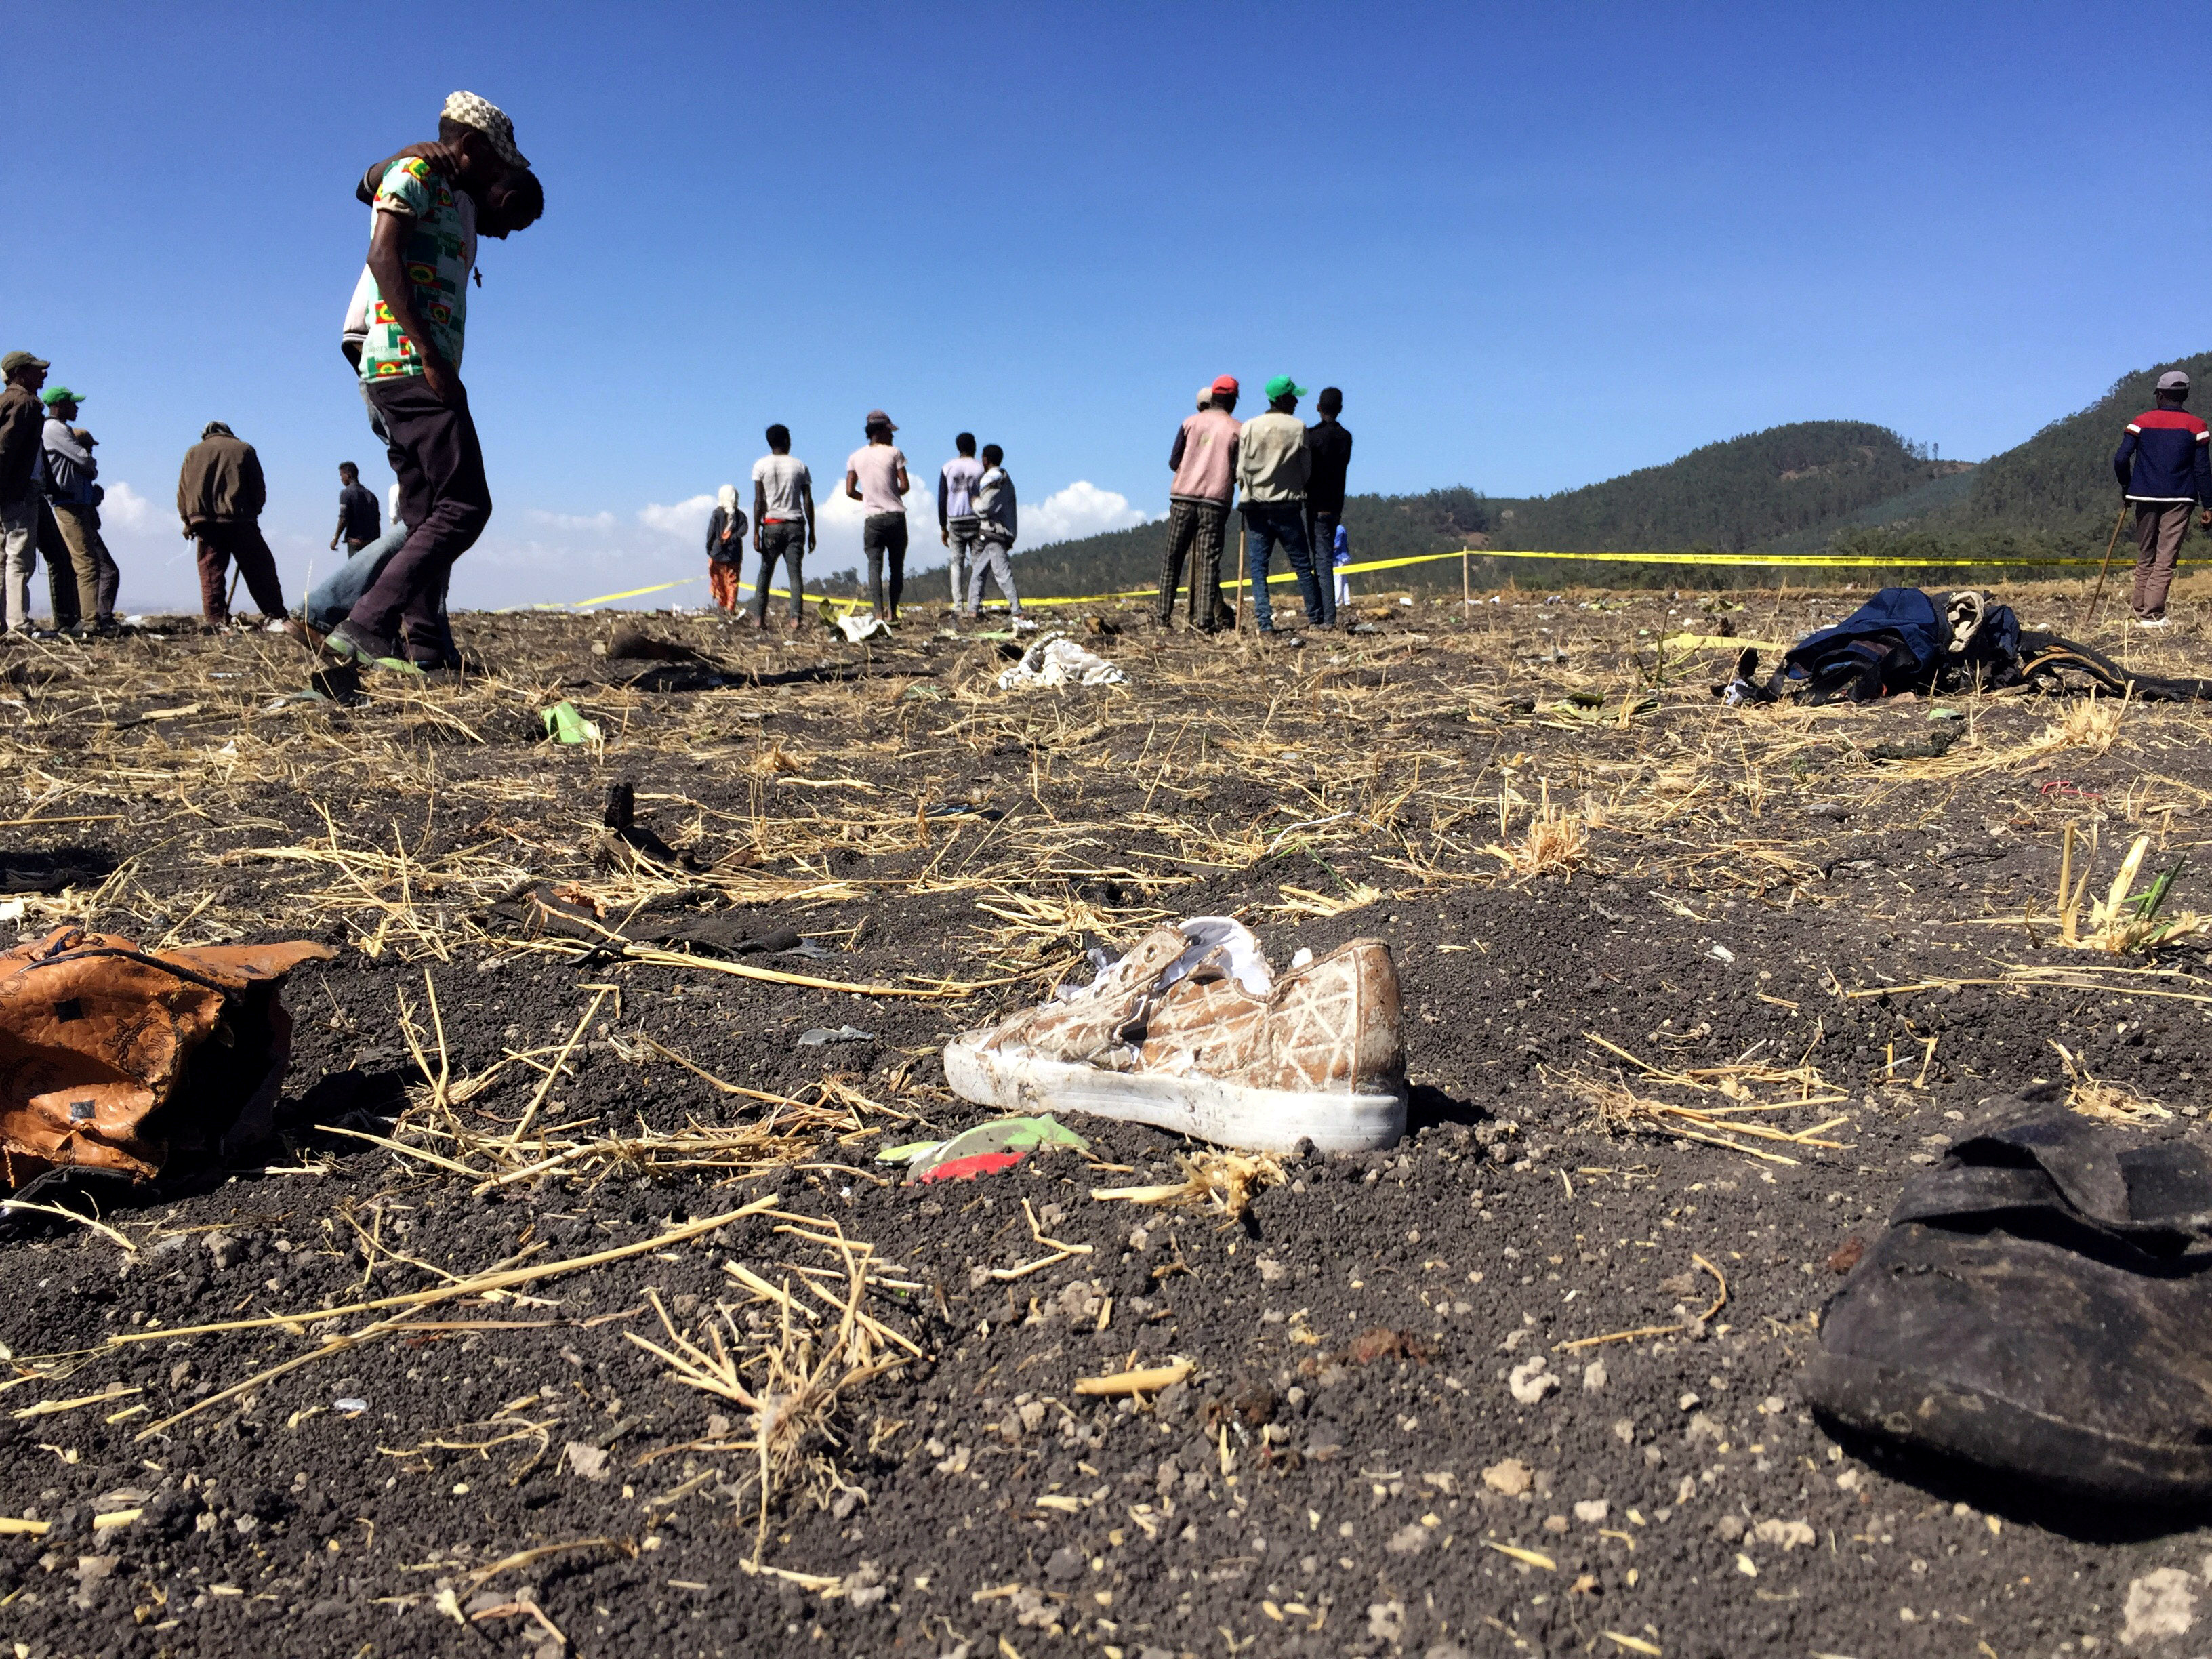 People walk at the scene of the Ethiopian Airlines Flight ET302 plane crash, near the town of Bishoftu, southeast of Addis Ababa, Ethiopia on March 10, 2019.